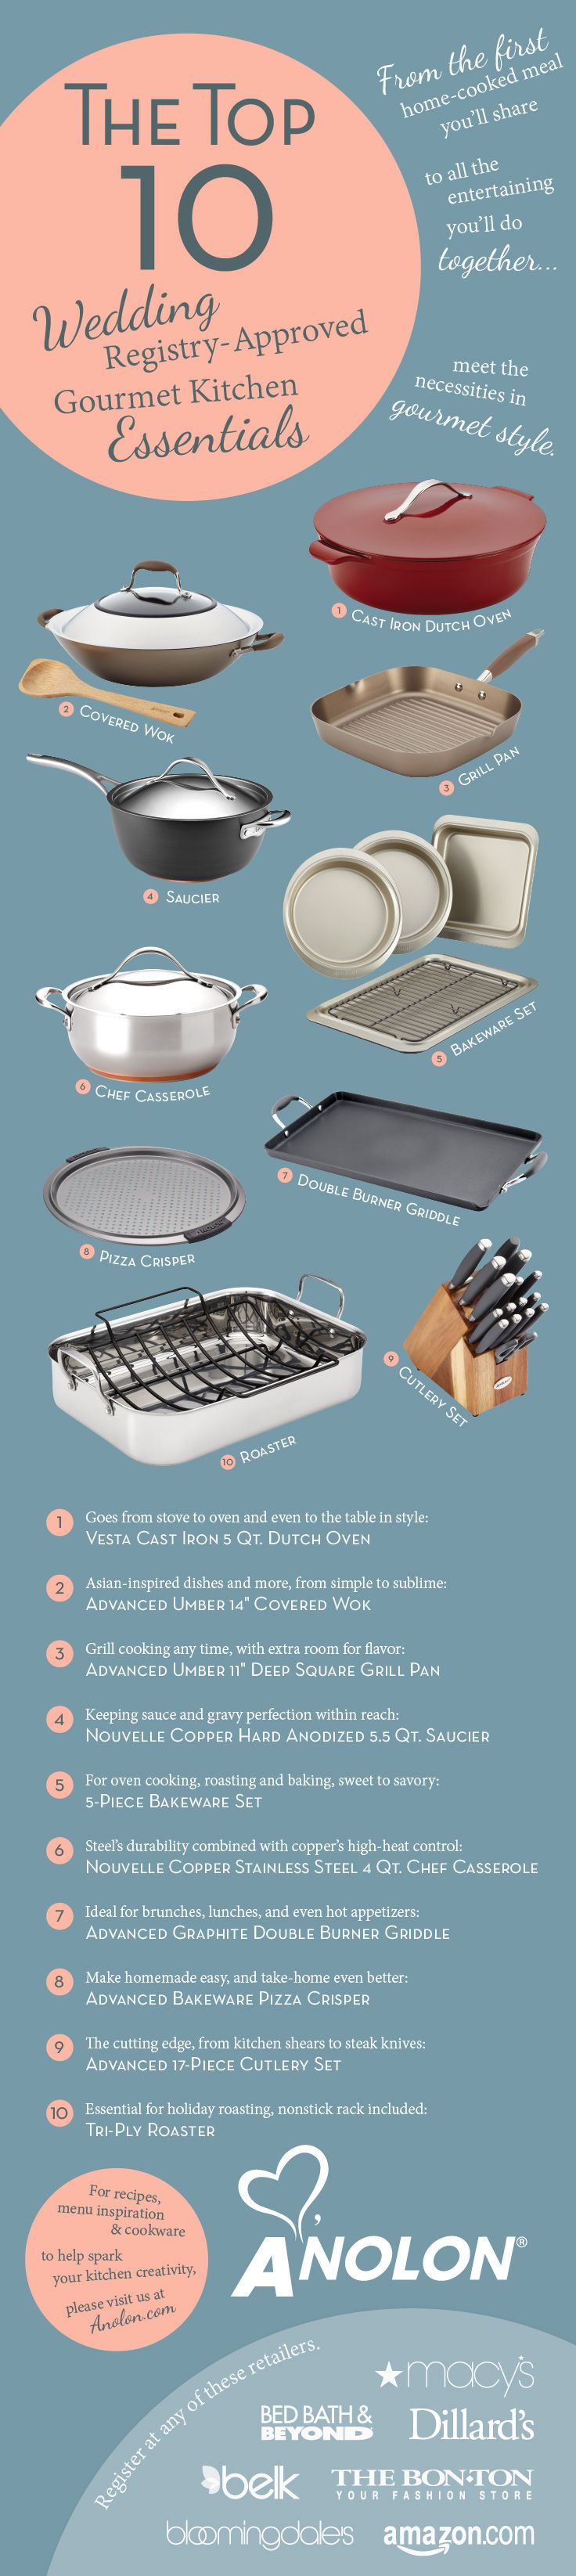 10 Essential Cookware/Kitchenware items everyone should have on their wedding gift registries.